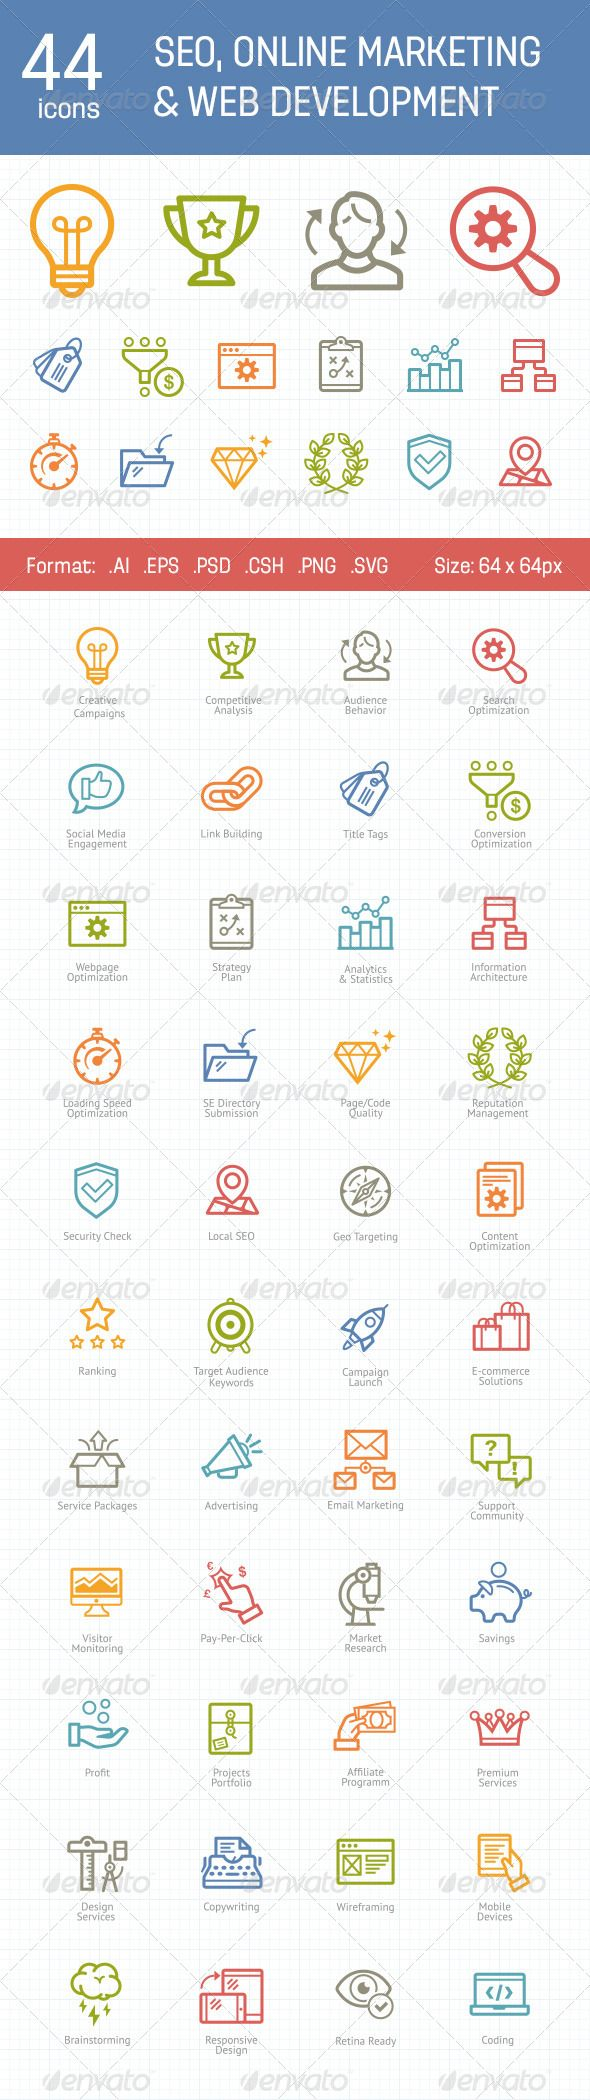 Professionally made premium quality SEO, Online Marketing and Web Development icon set. Can be used in all kind of media: template